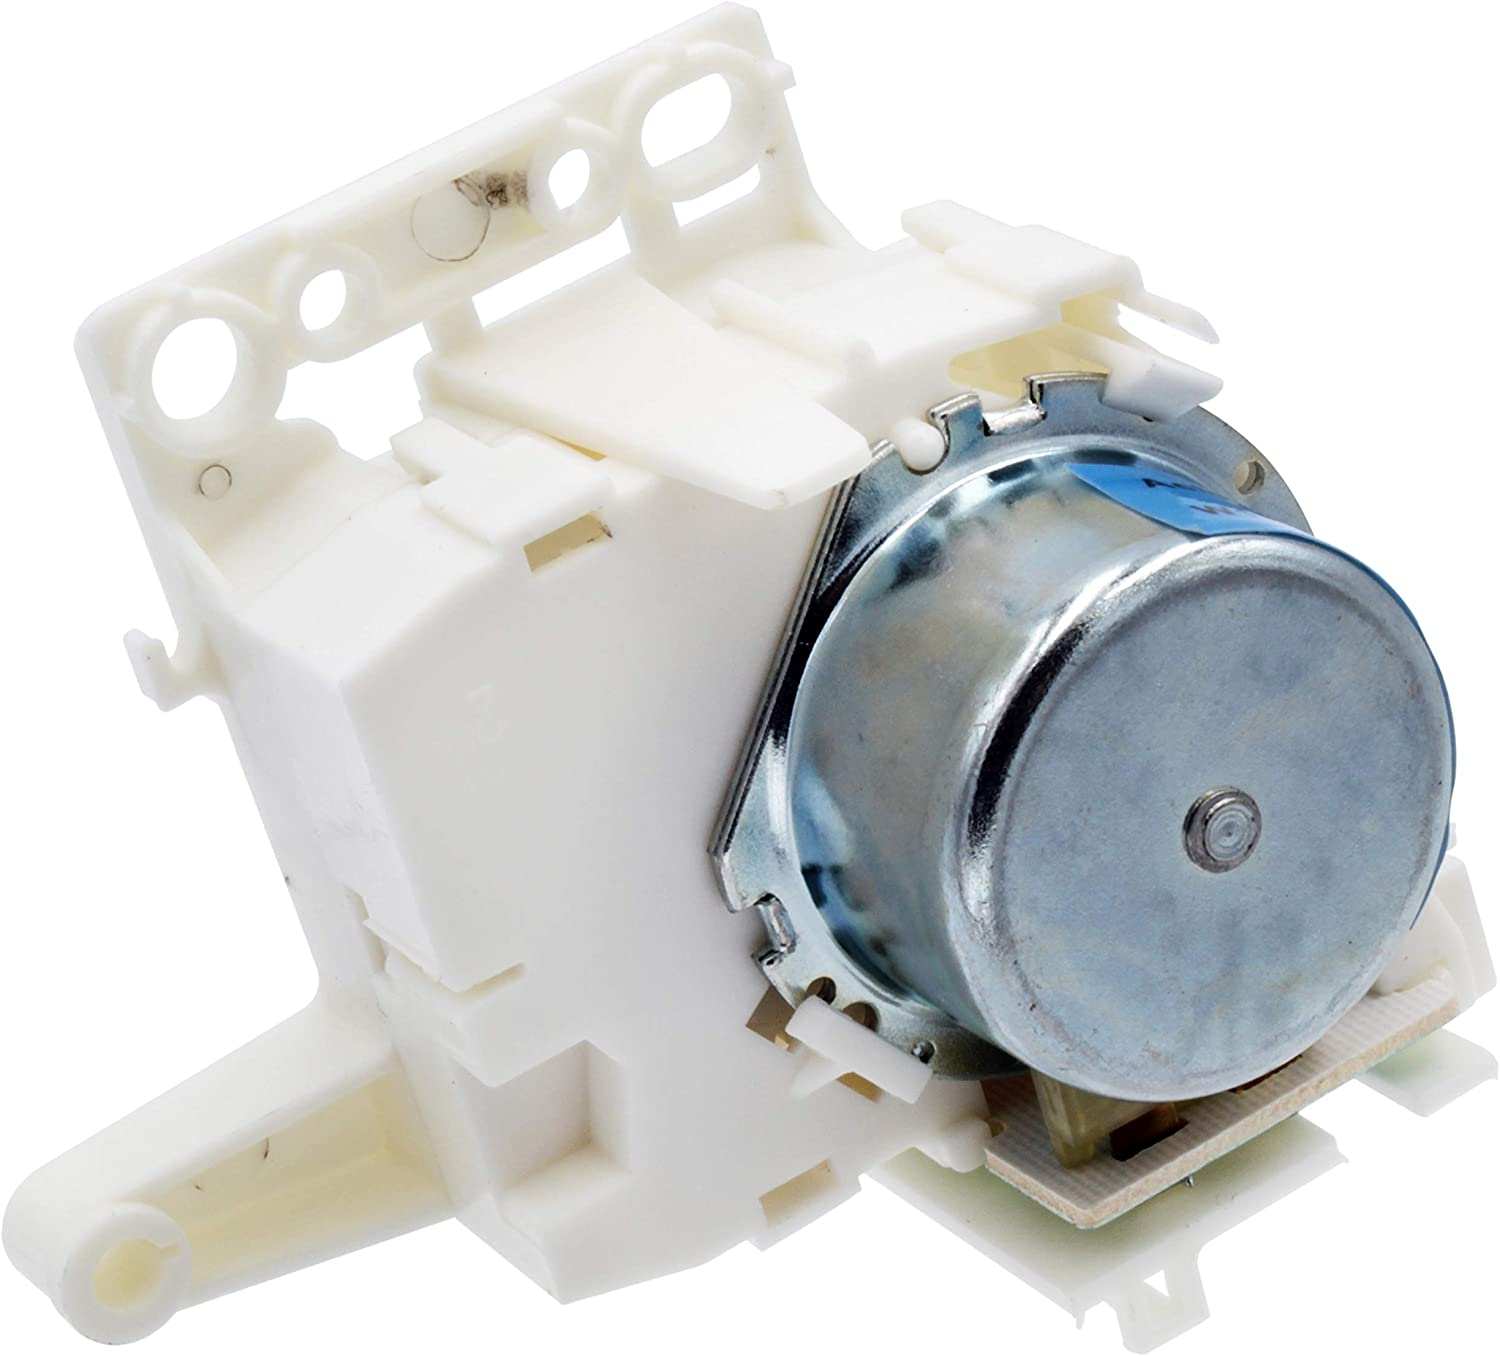 Supplying Demand W10352973 Washer Dispenser Actuator Compatible With Whirlpool Fits 8183186, PS11753574